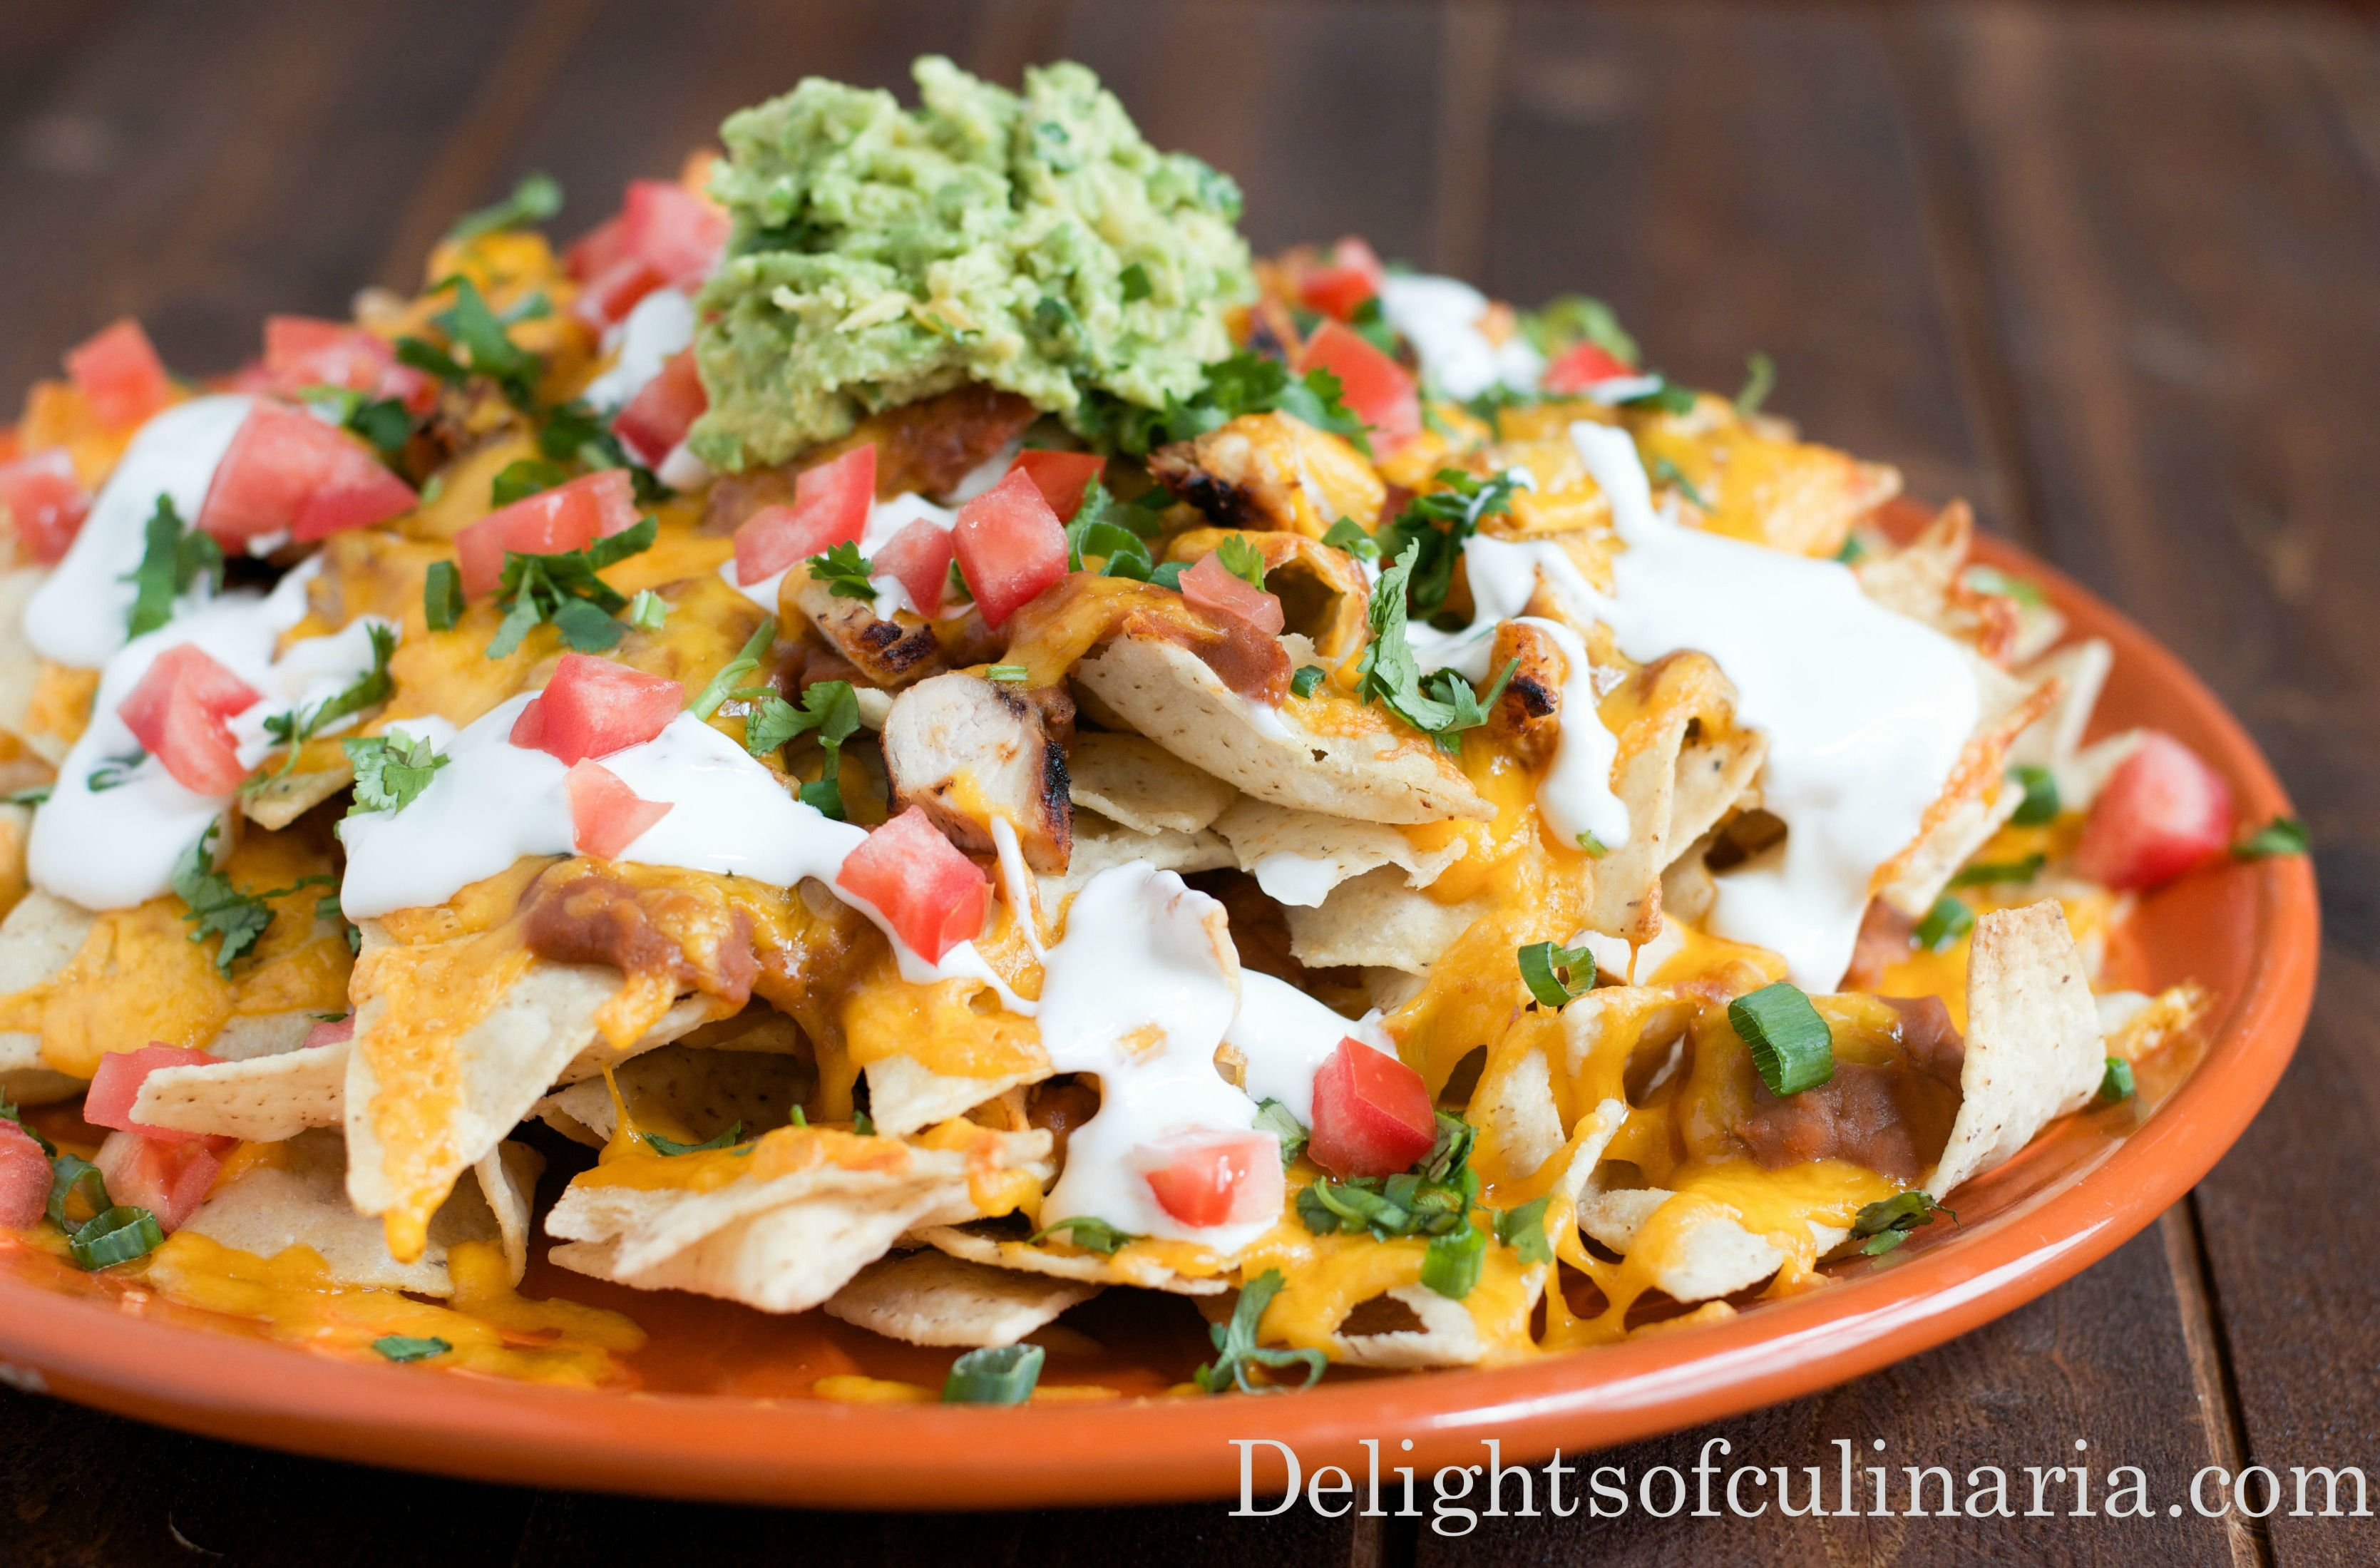 grande nachos recipe blogger recipes mexican food